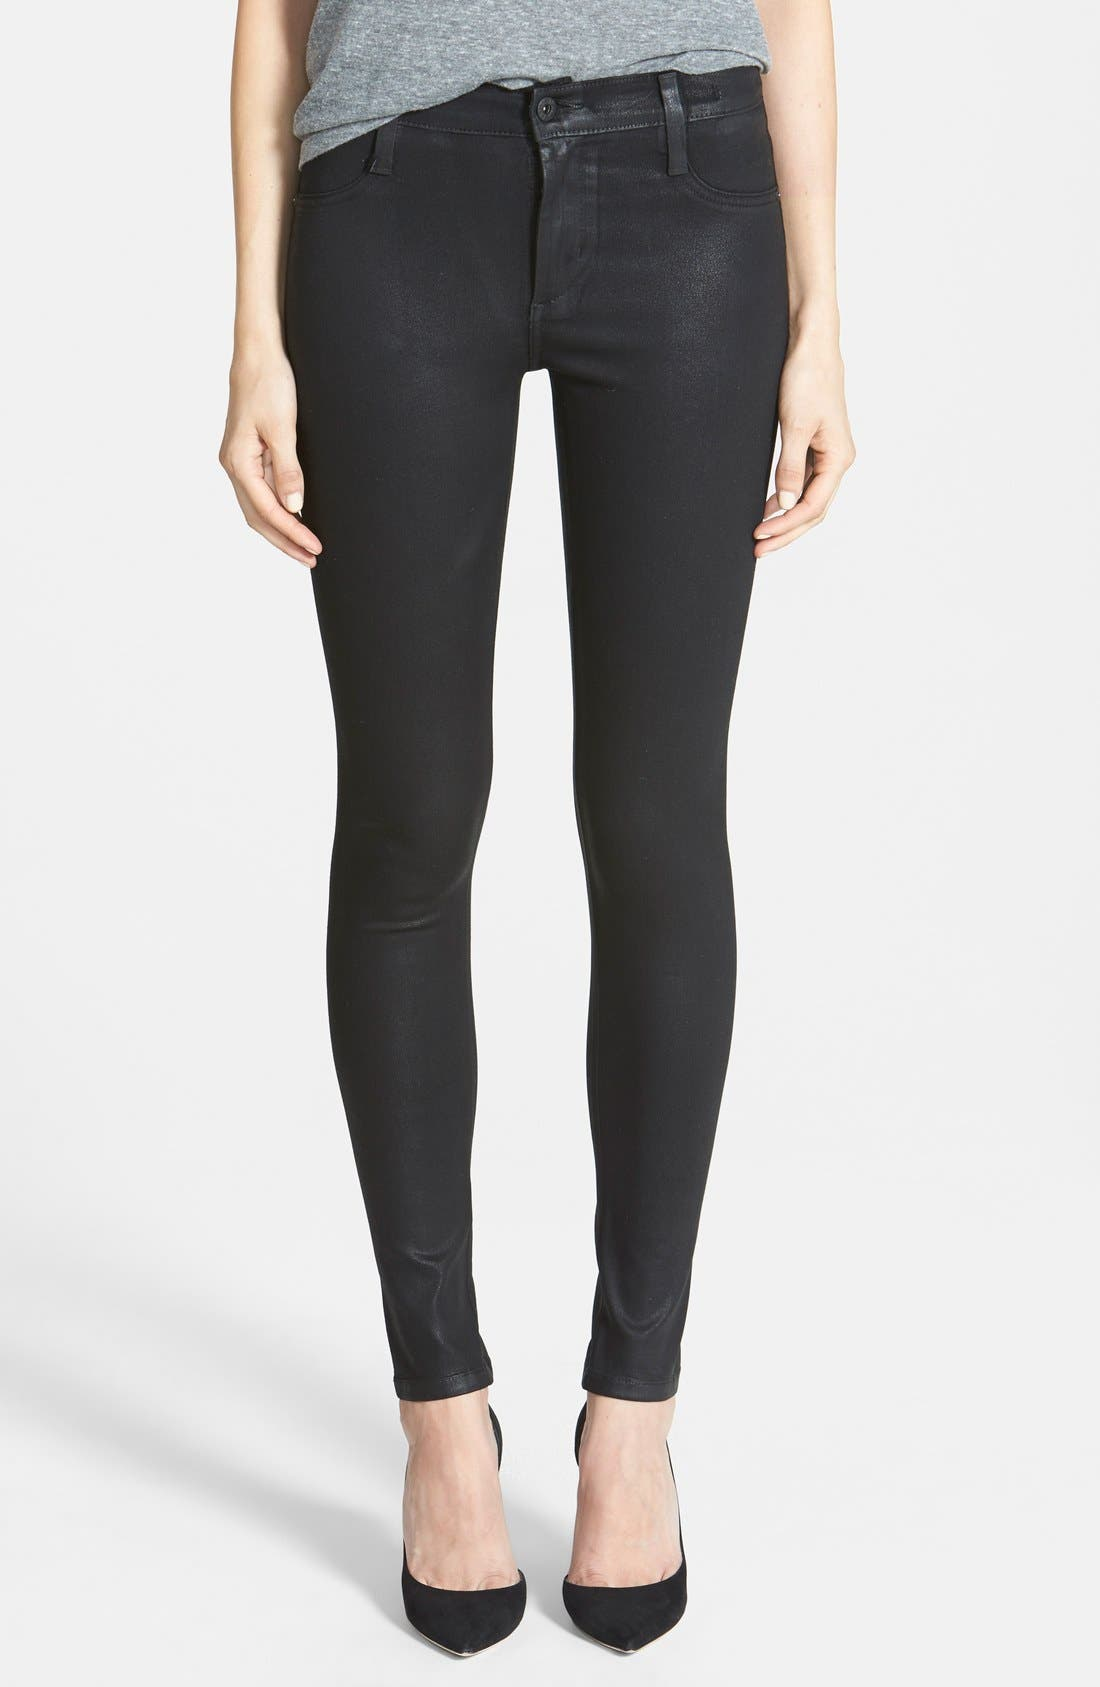 Alternate Image 1 Selected - James Jeans 'Twiggy' Seamless Yoga Leggings (Oil Slicked)